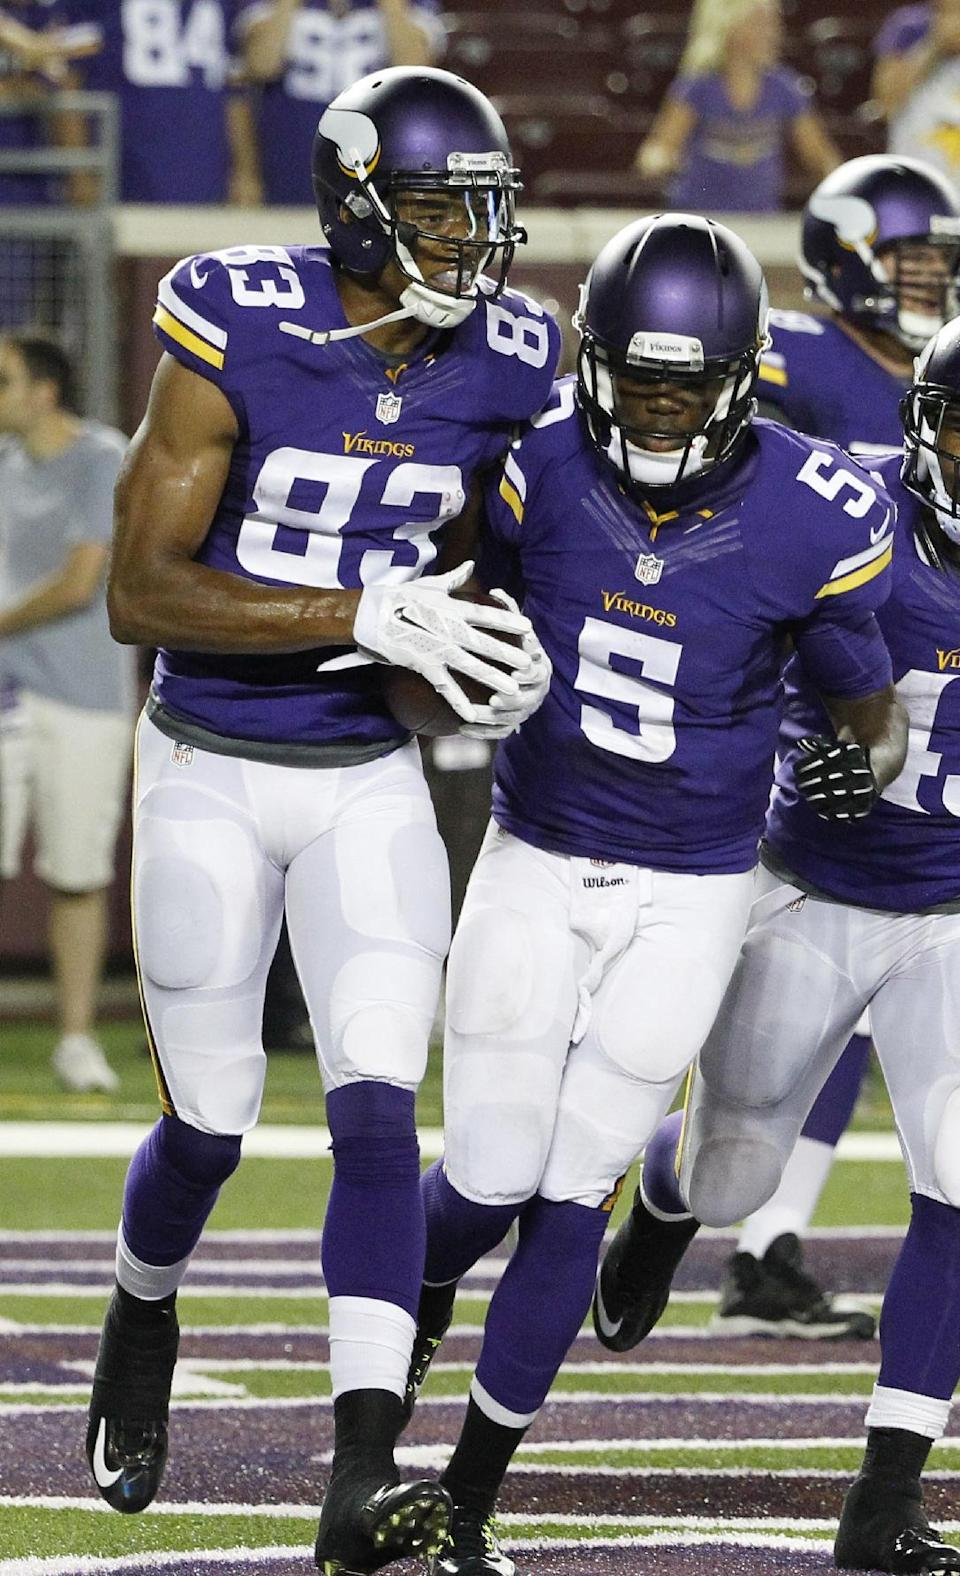 Minnesota Vikings wide receiver Rodney Smith, left, celebrates with quarterback Teddy Bridgewater (5) after catching a 2-yard touchdown pass during the second half of an NFL preseason football game against the Arizona Cardinals, Saturday, Aug. 16, 2014, in Minneapolis. The Vikings won 30-28. (AP Photo/Ann Heisenfelt)